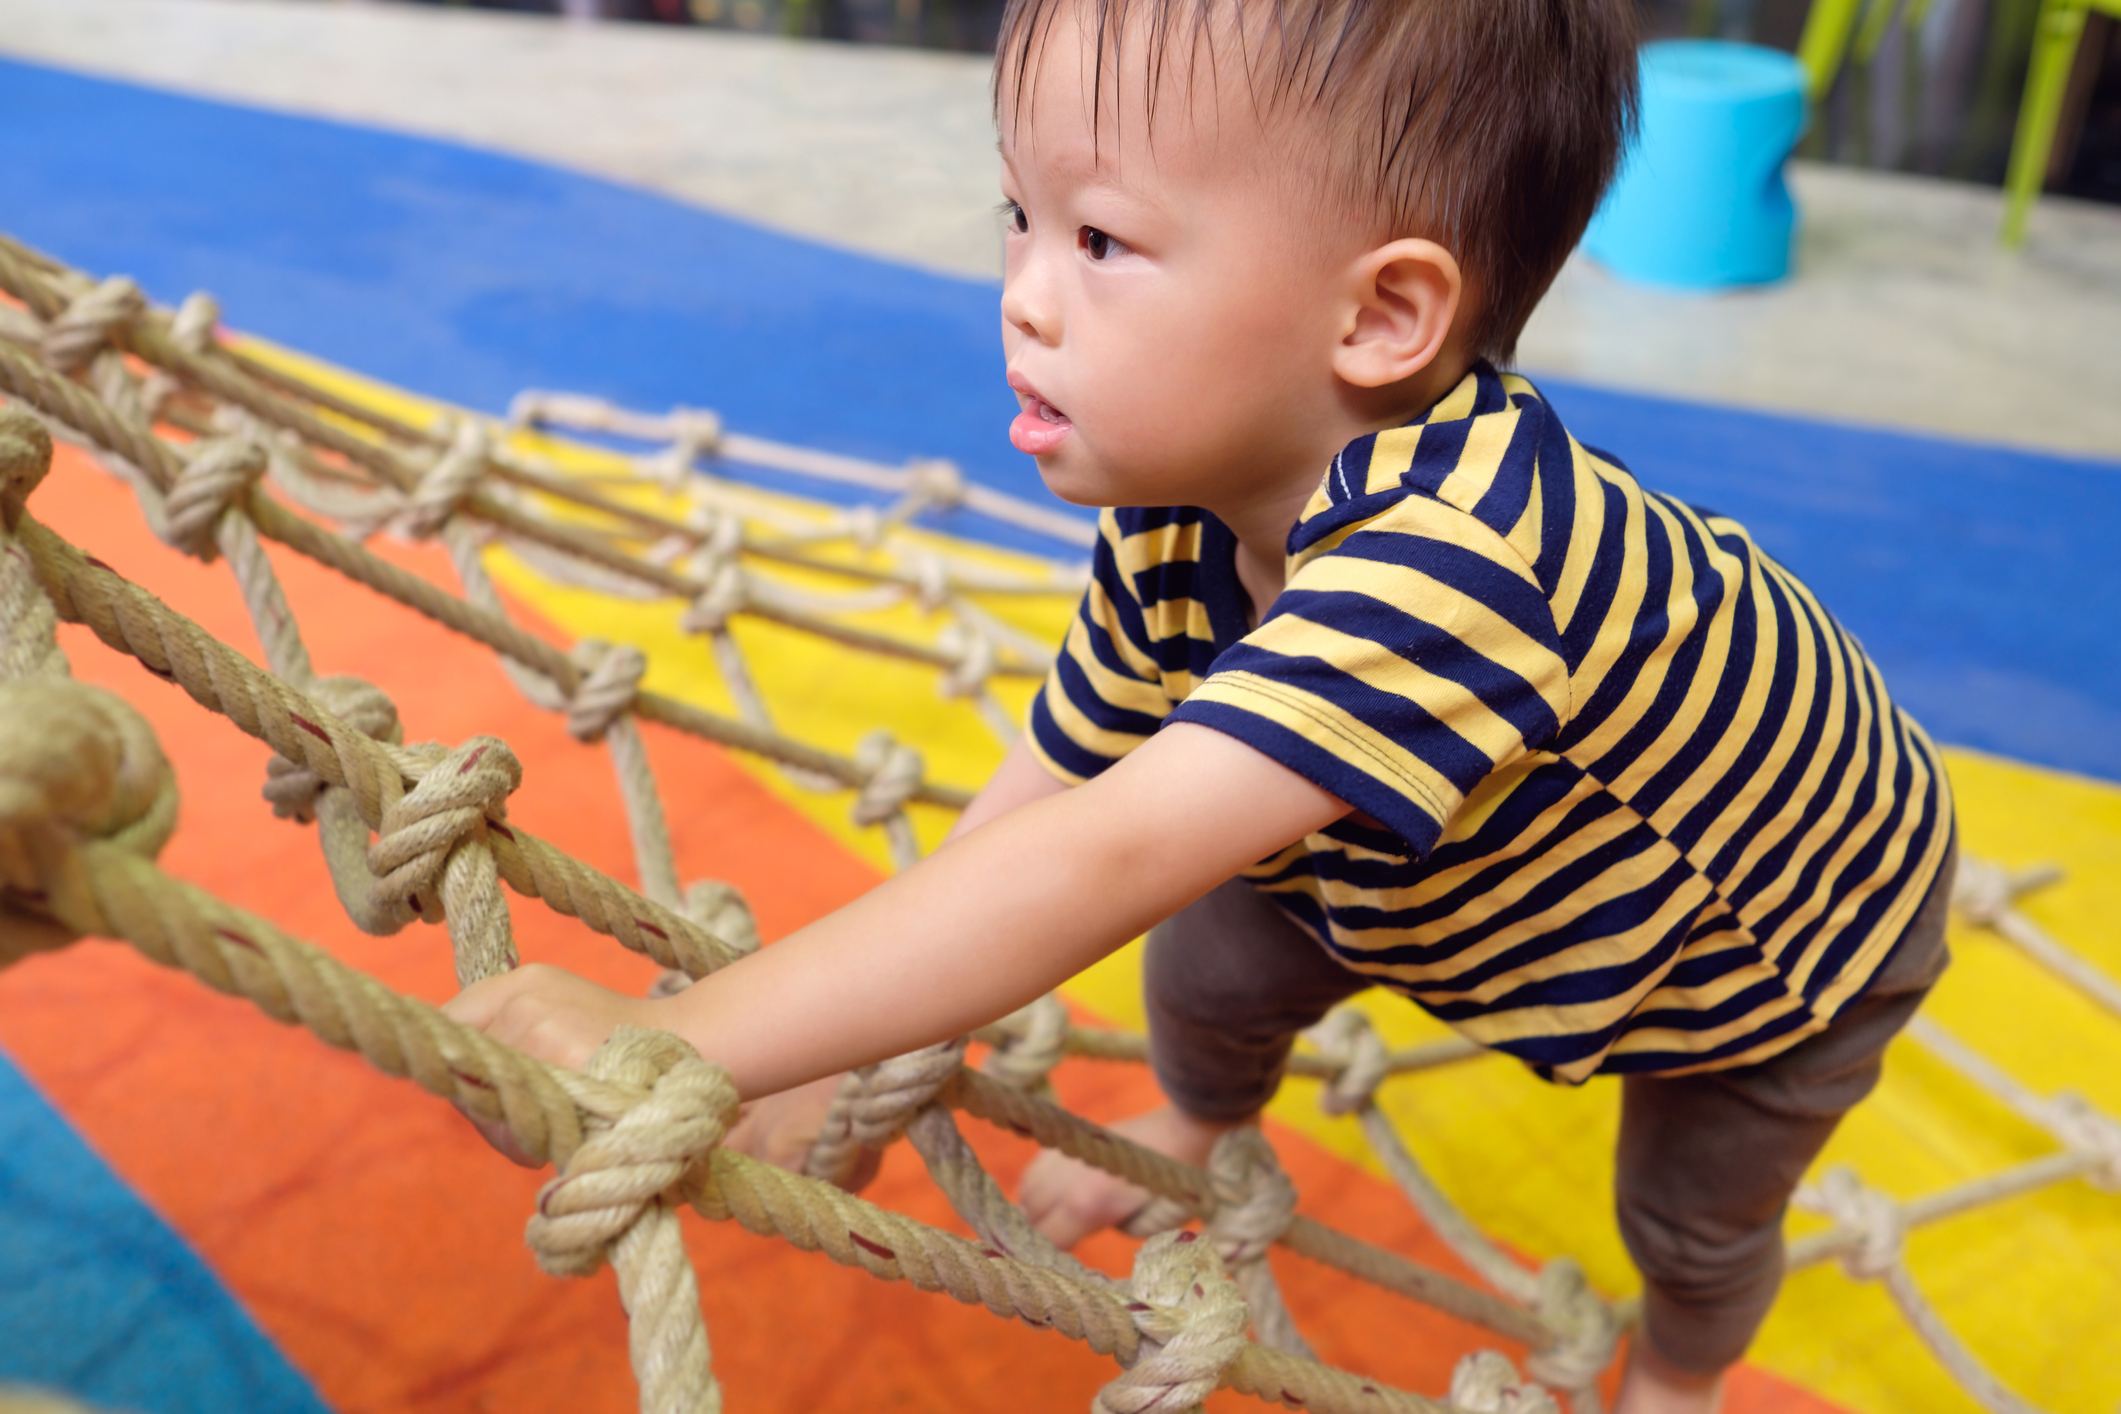 Does your child care centre encourage risky play? Here's why it should